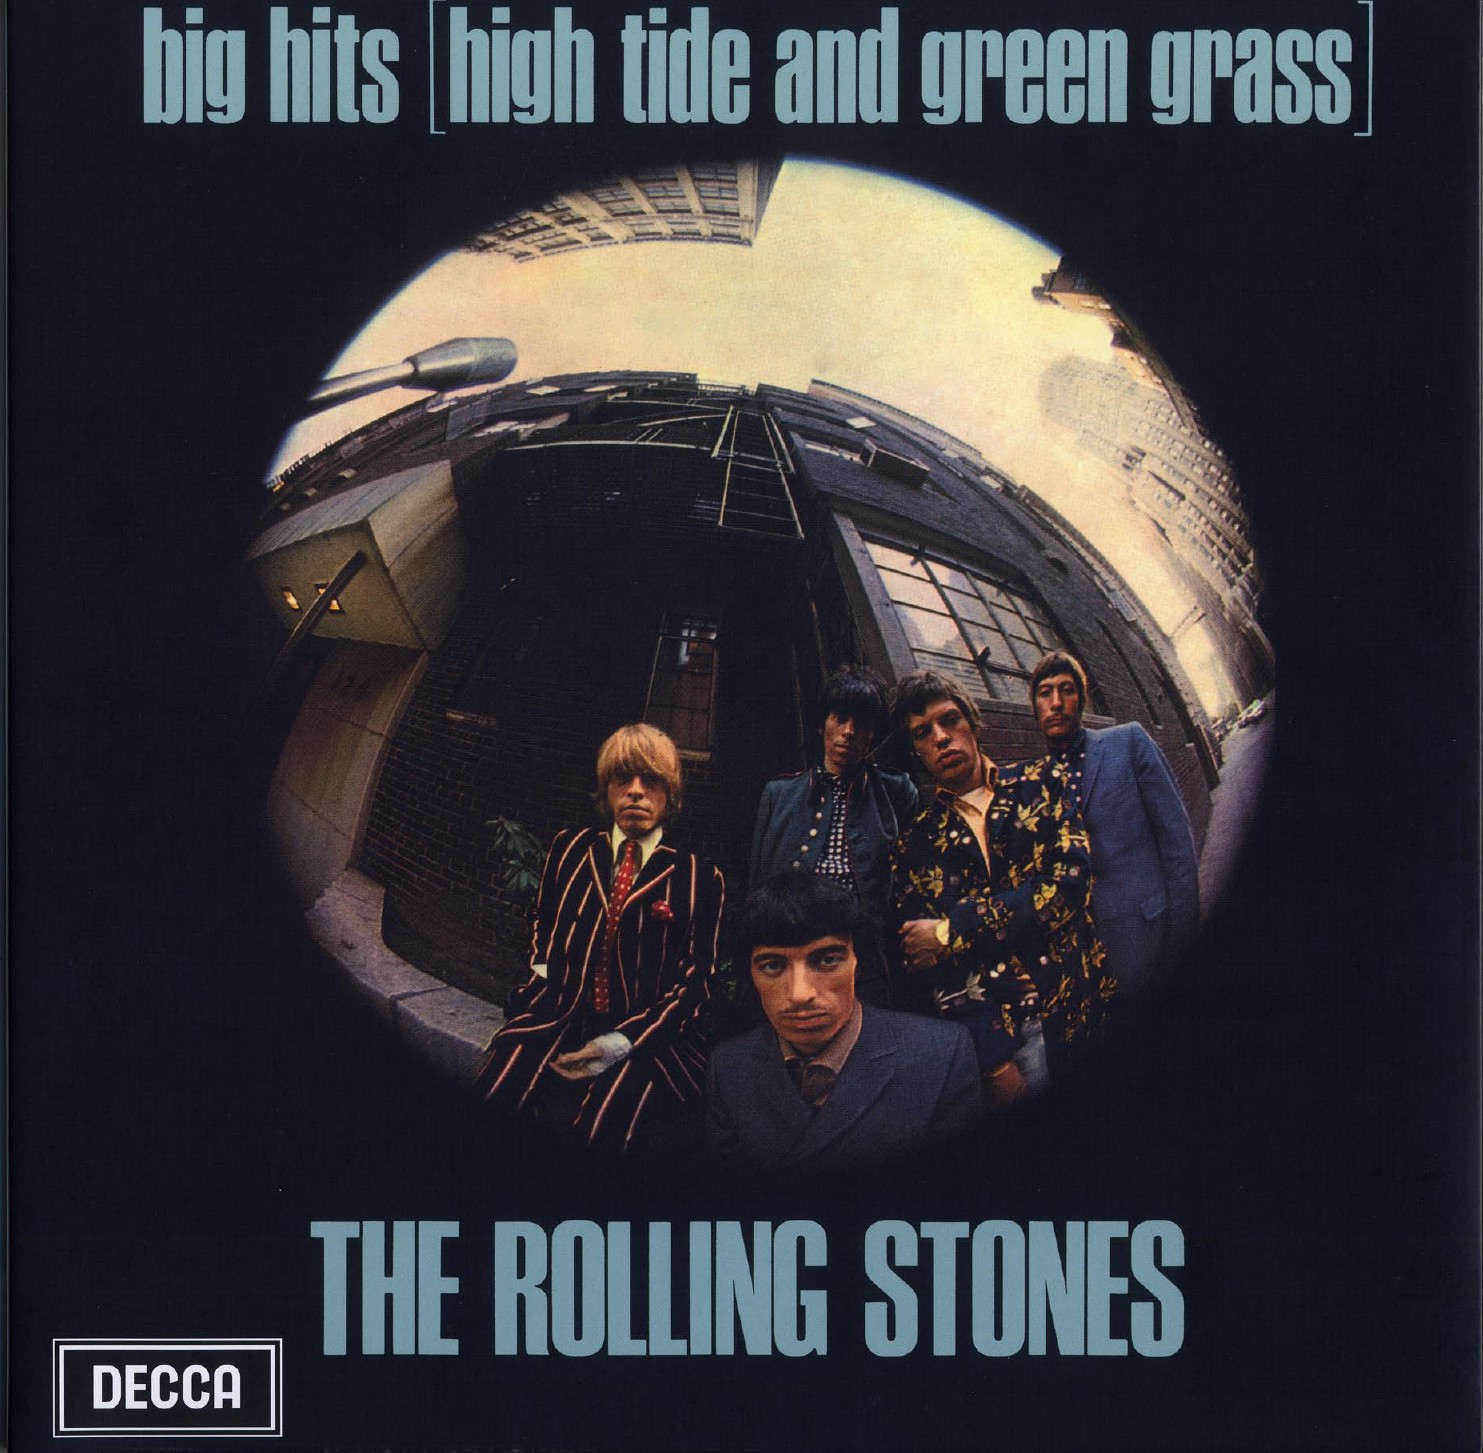 vinyl LP THE ROLLING STONES High Tide Green Grass (Big Hits Vol. 1)